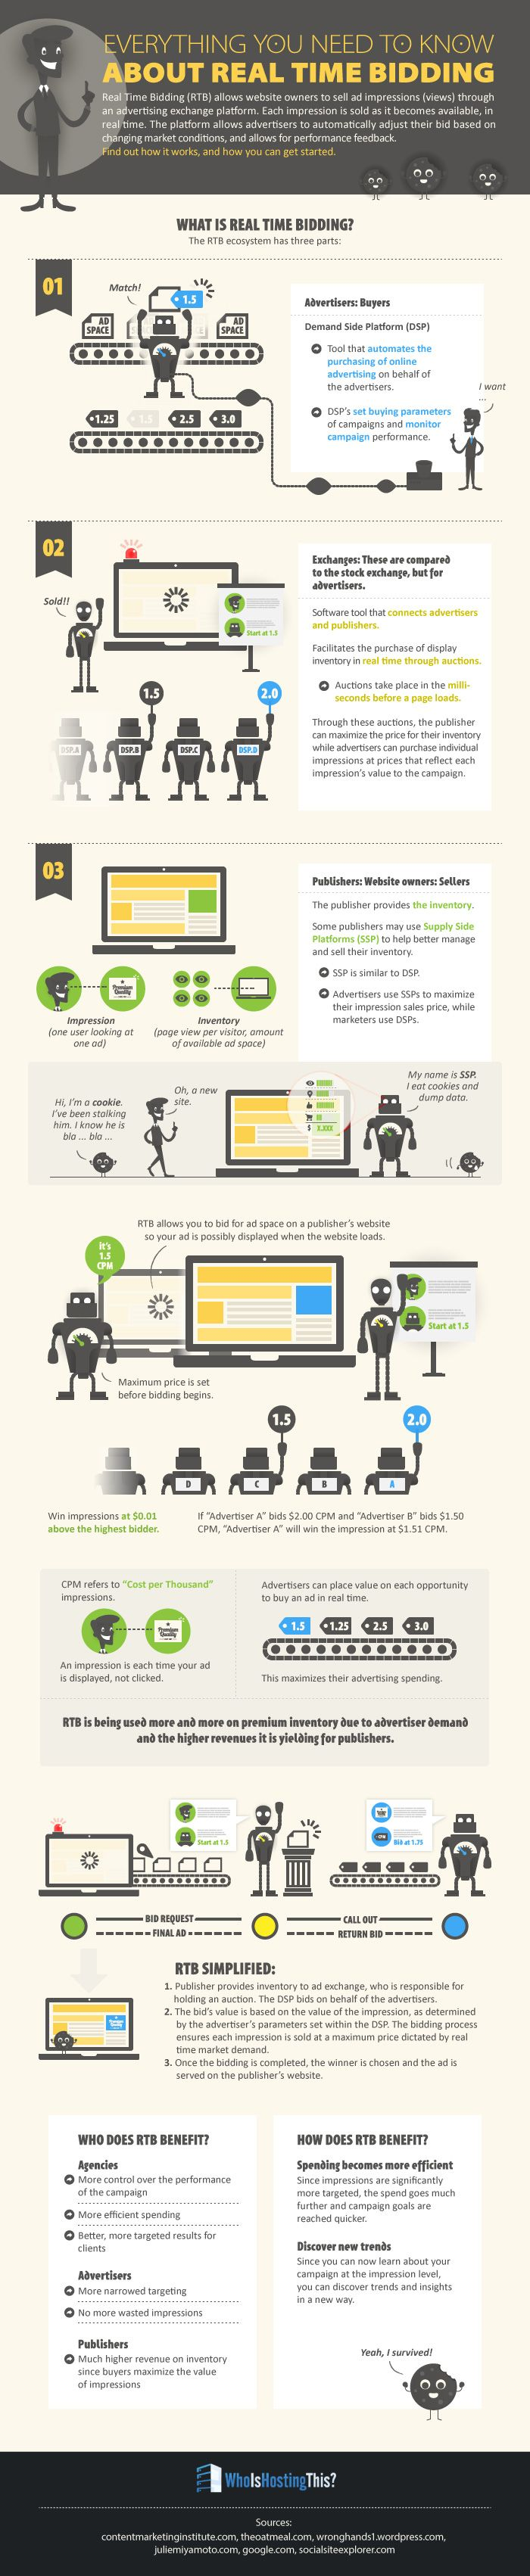 [Infographic] Real Time Bidding  #marketing #rtb #onlinemarketing